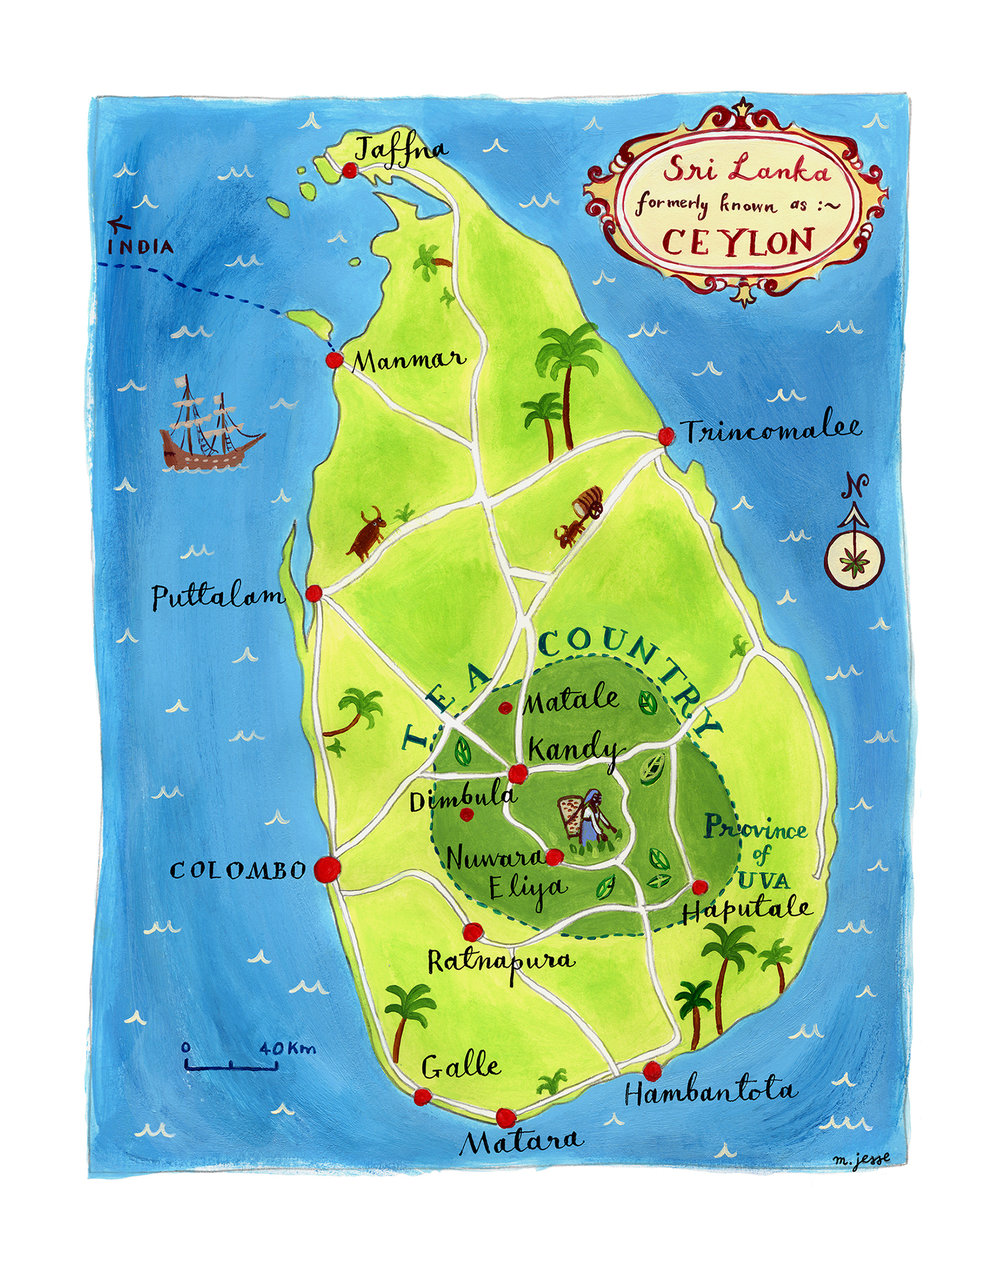 Sri Lanka tea map